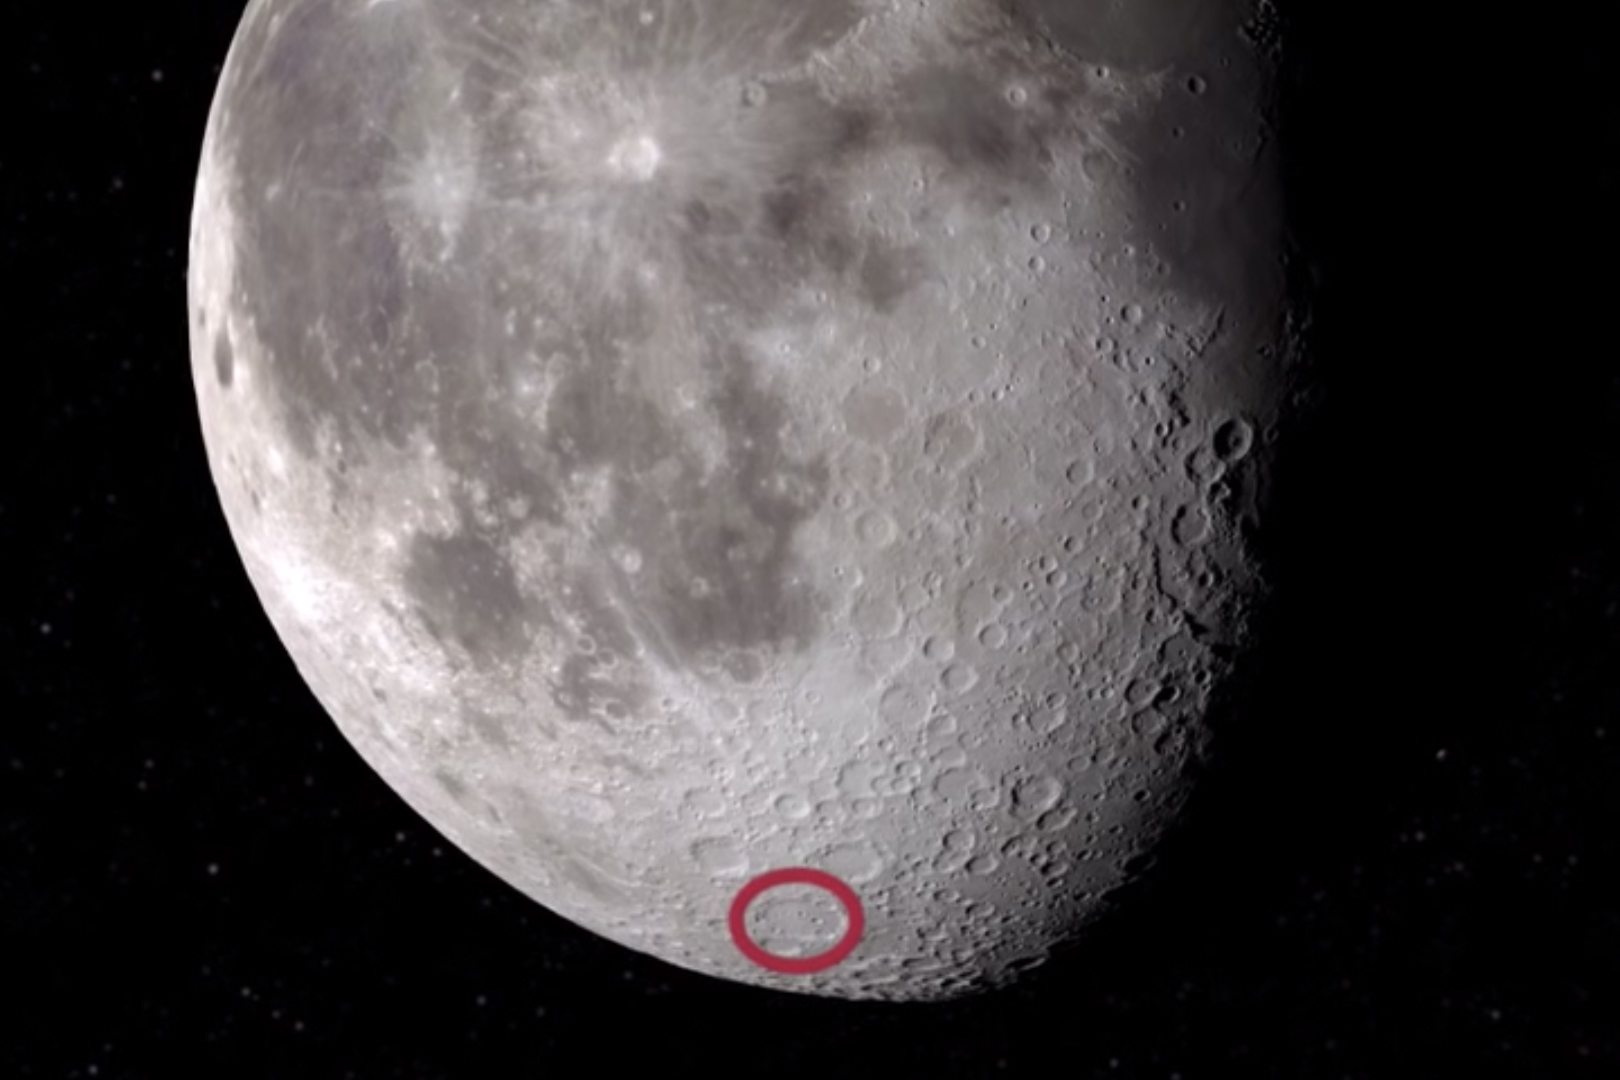 location where water was discovered on moon